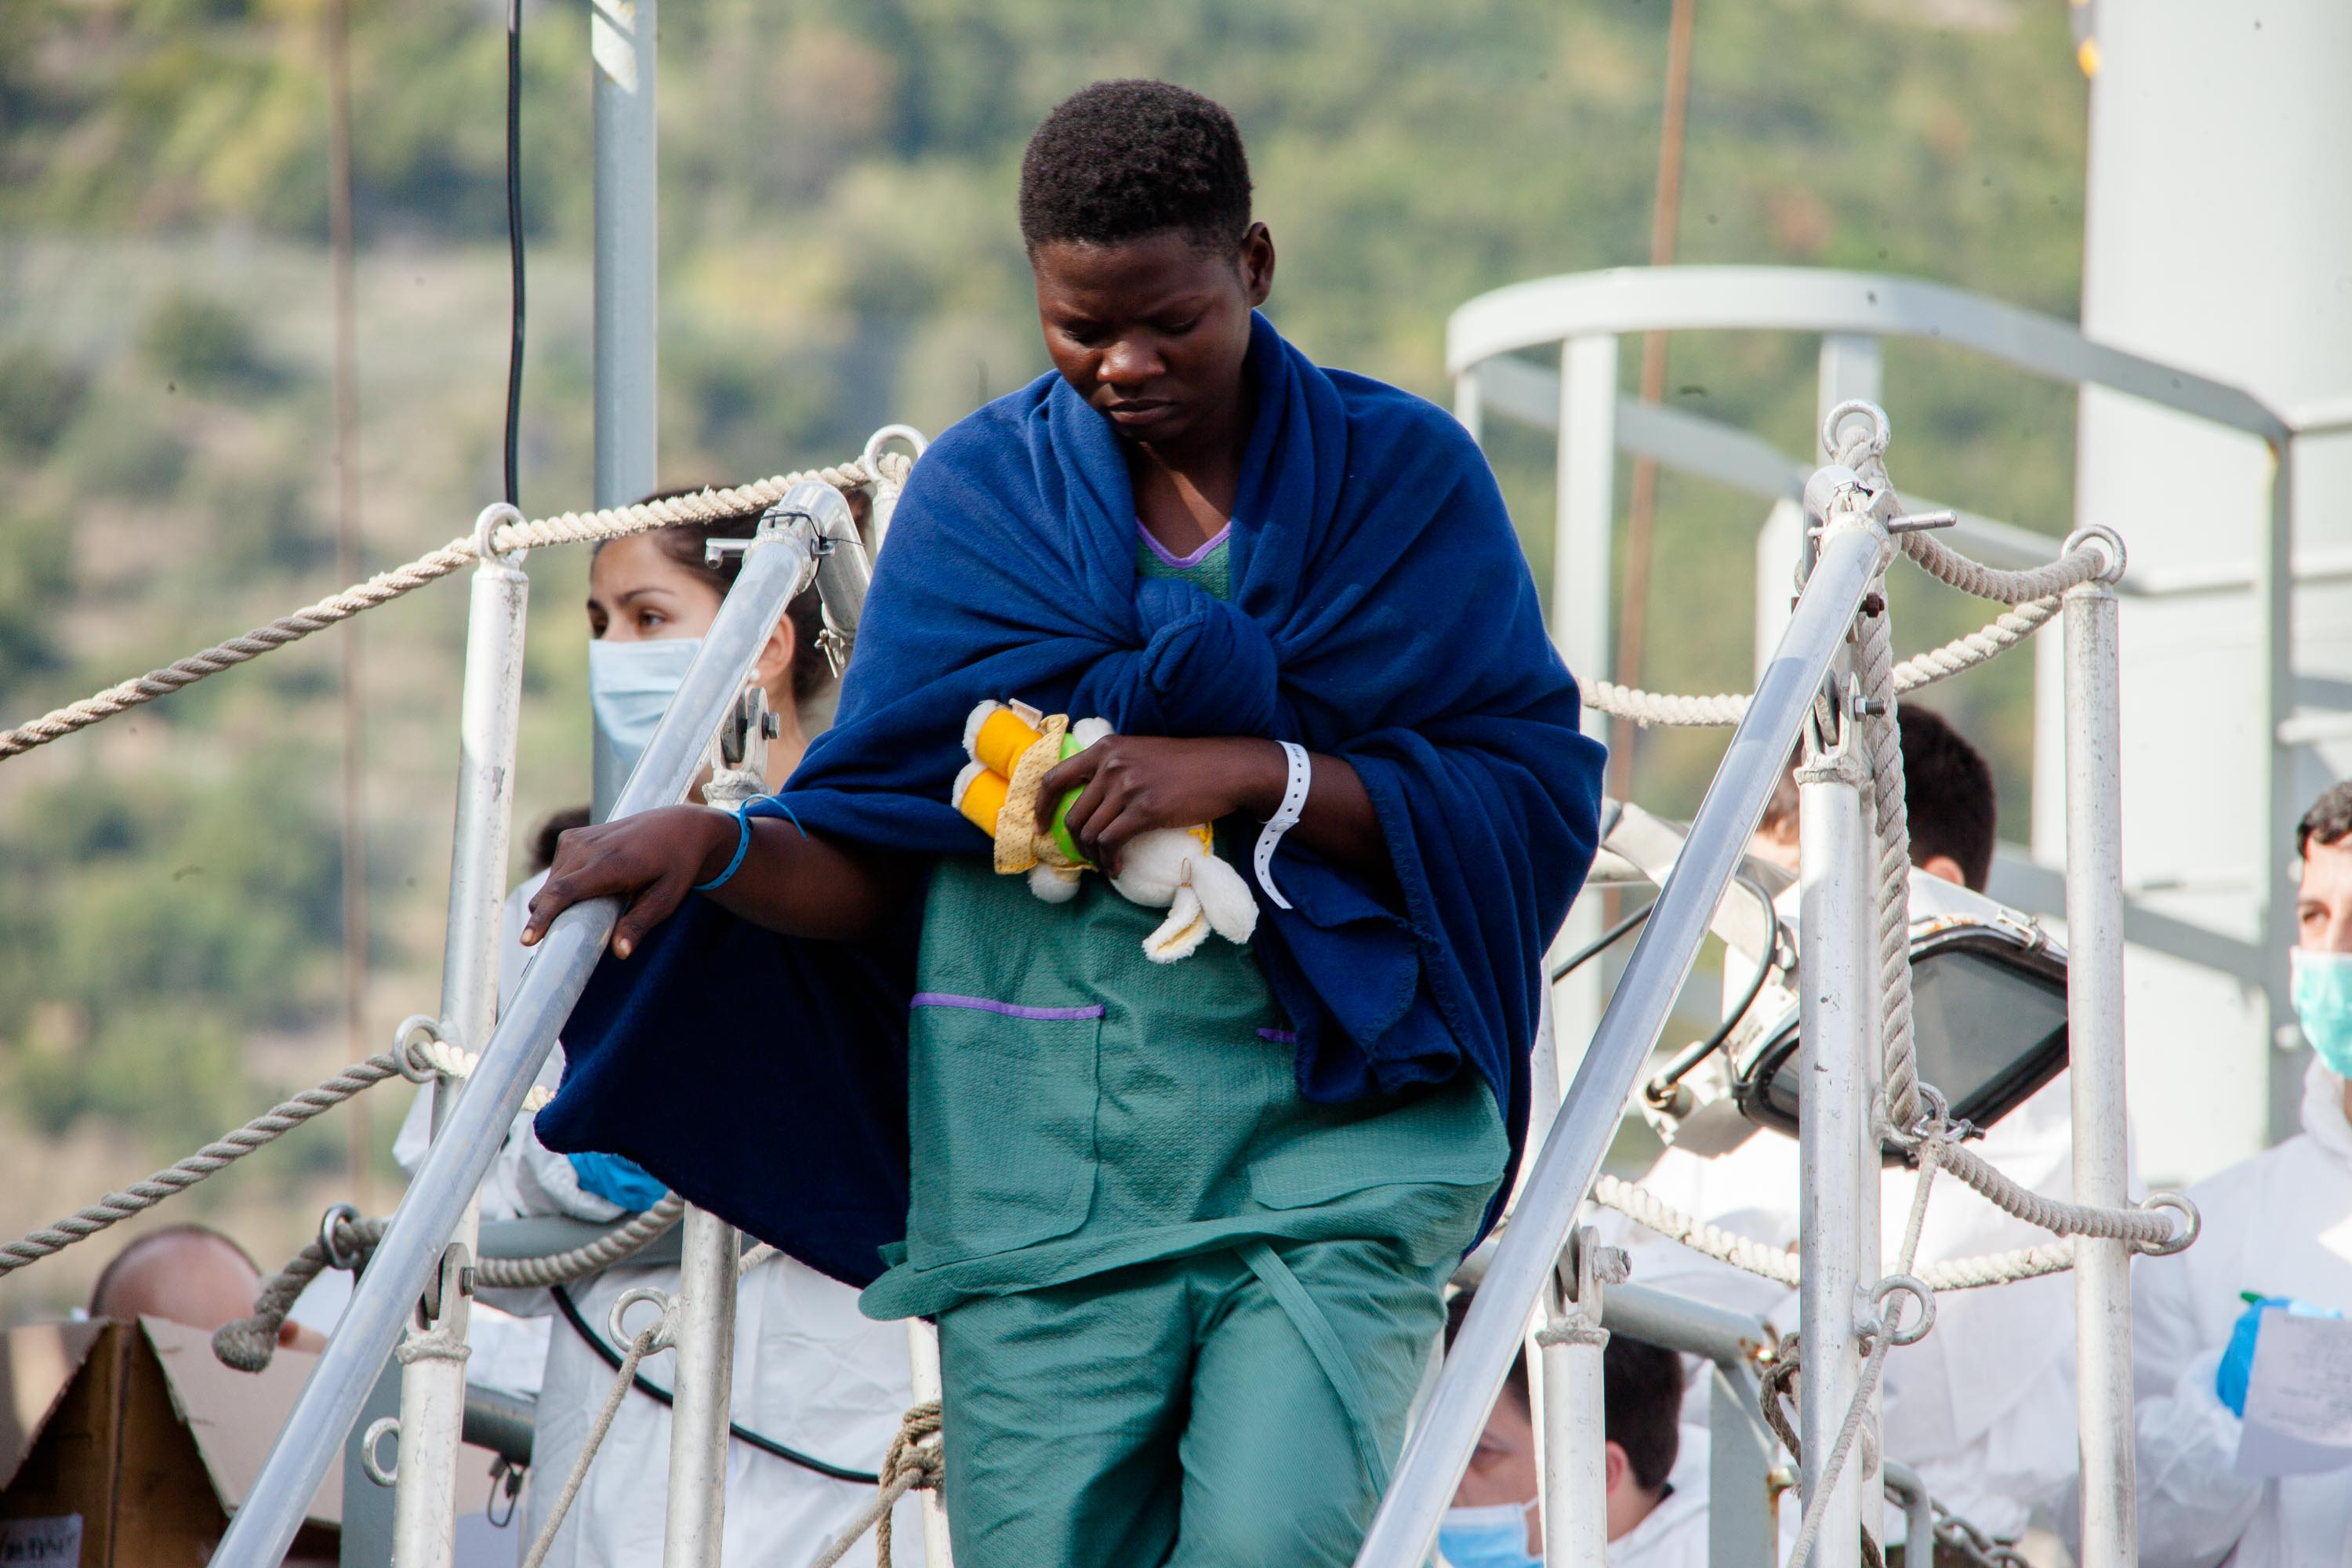 Italy Is Investigating The Deaths Of 26 Nigerian Women & Girls Whose Bodies Were Found At Sea